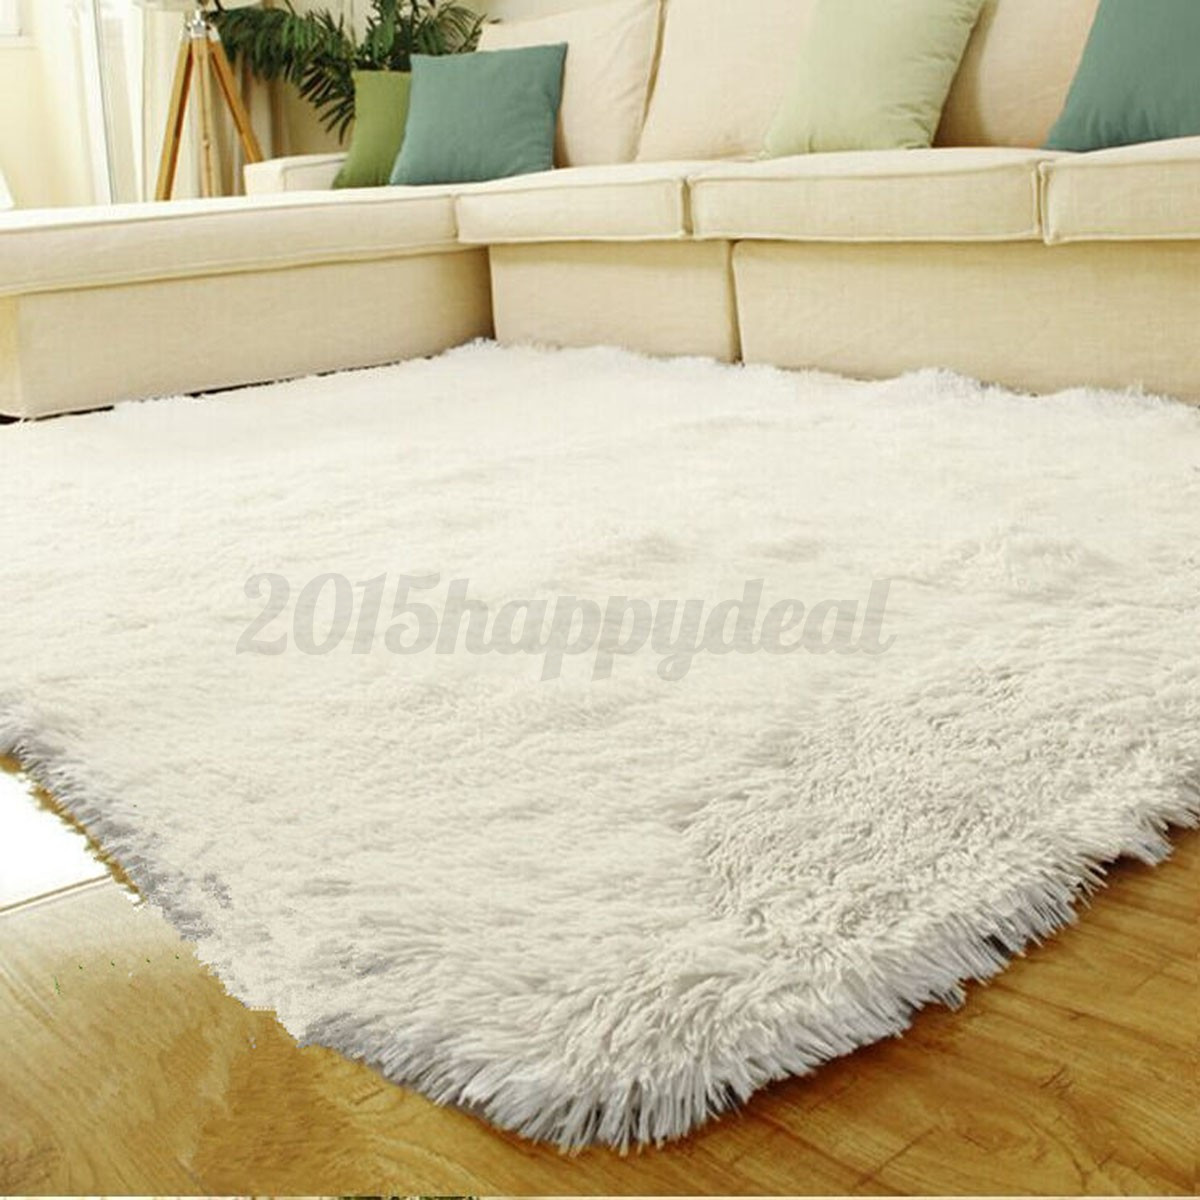 Fluffy Anti-skid Shaggy Area Rug Carpet Home Bedroom Floor